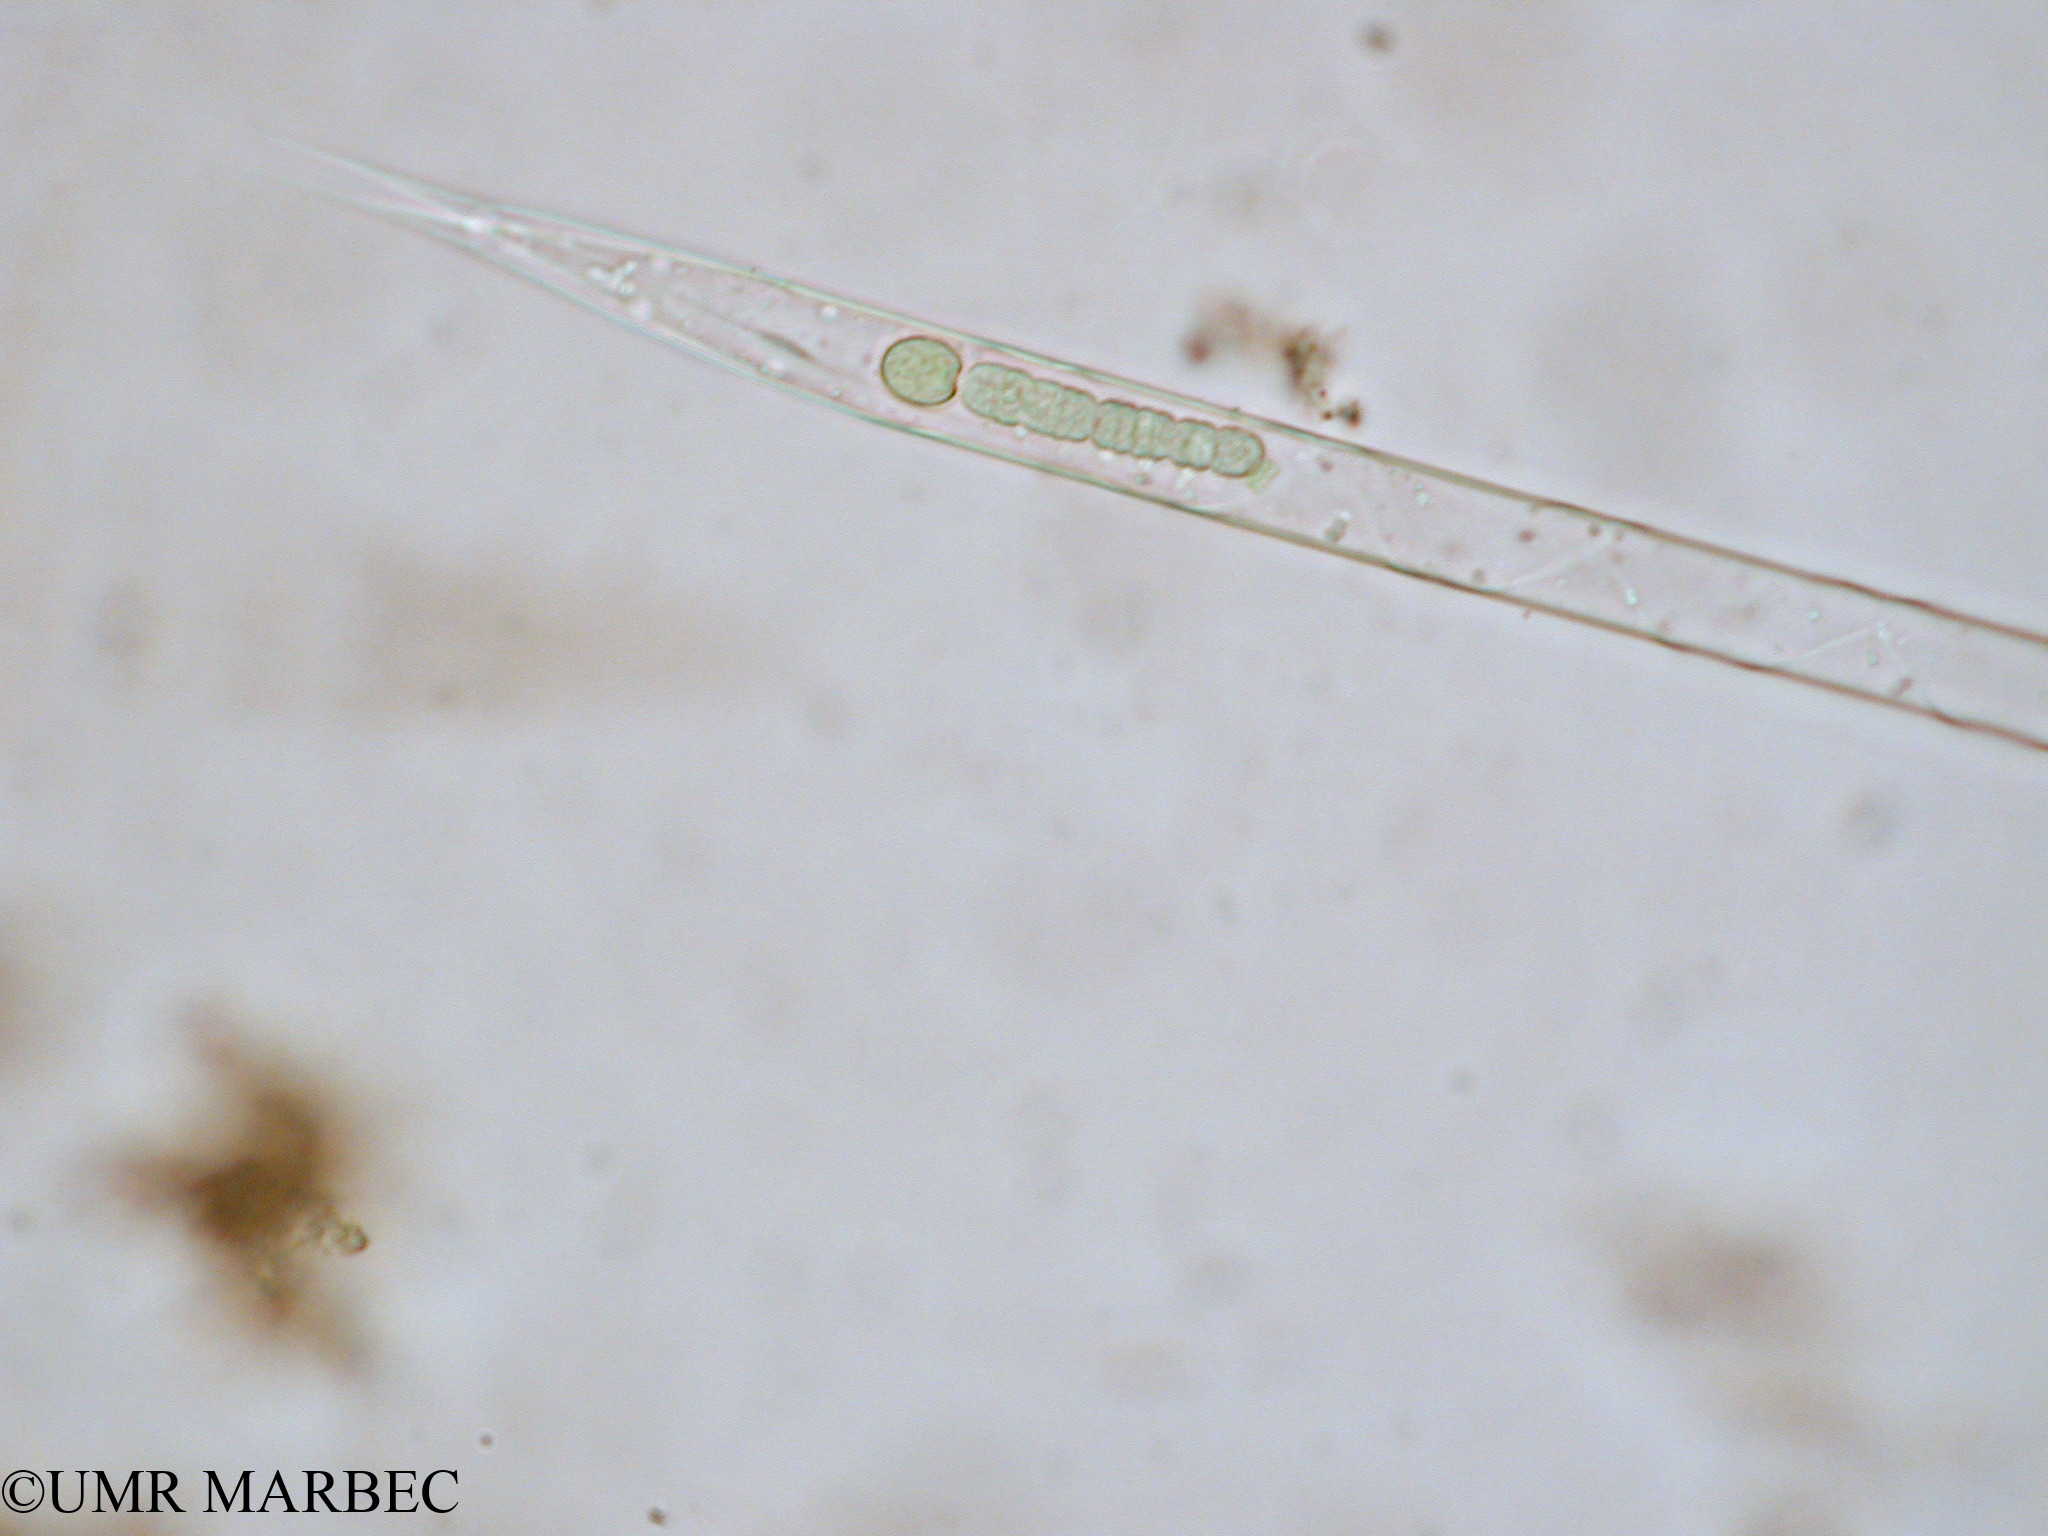 phyto/Tulear Lagoon/all/ICAR2 Avril 2008/Rhizosolenia hebetata (Rhizosolenia sp3 x1.5x40 b)(copy).jpg